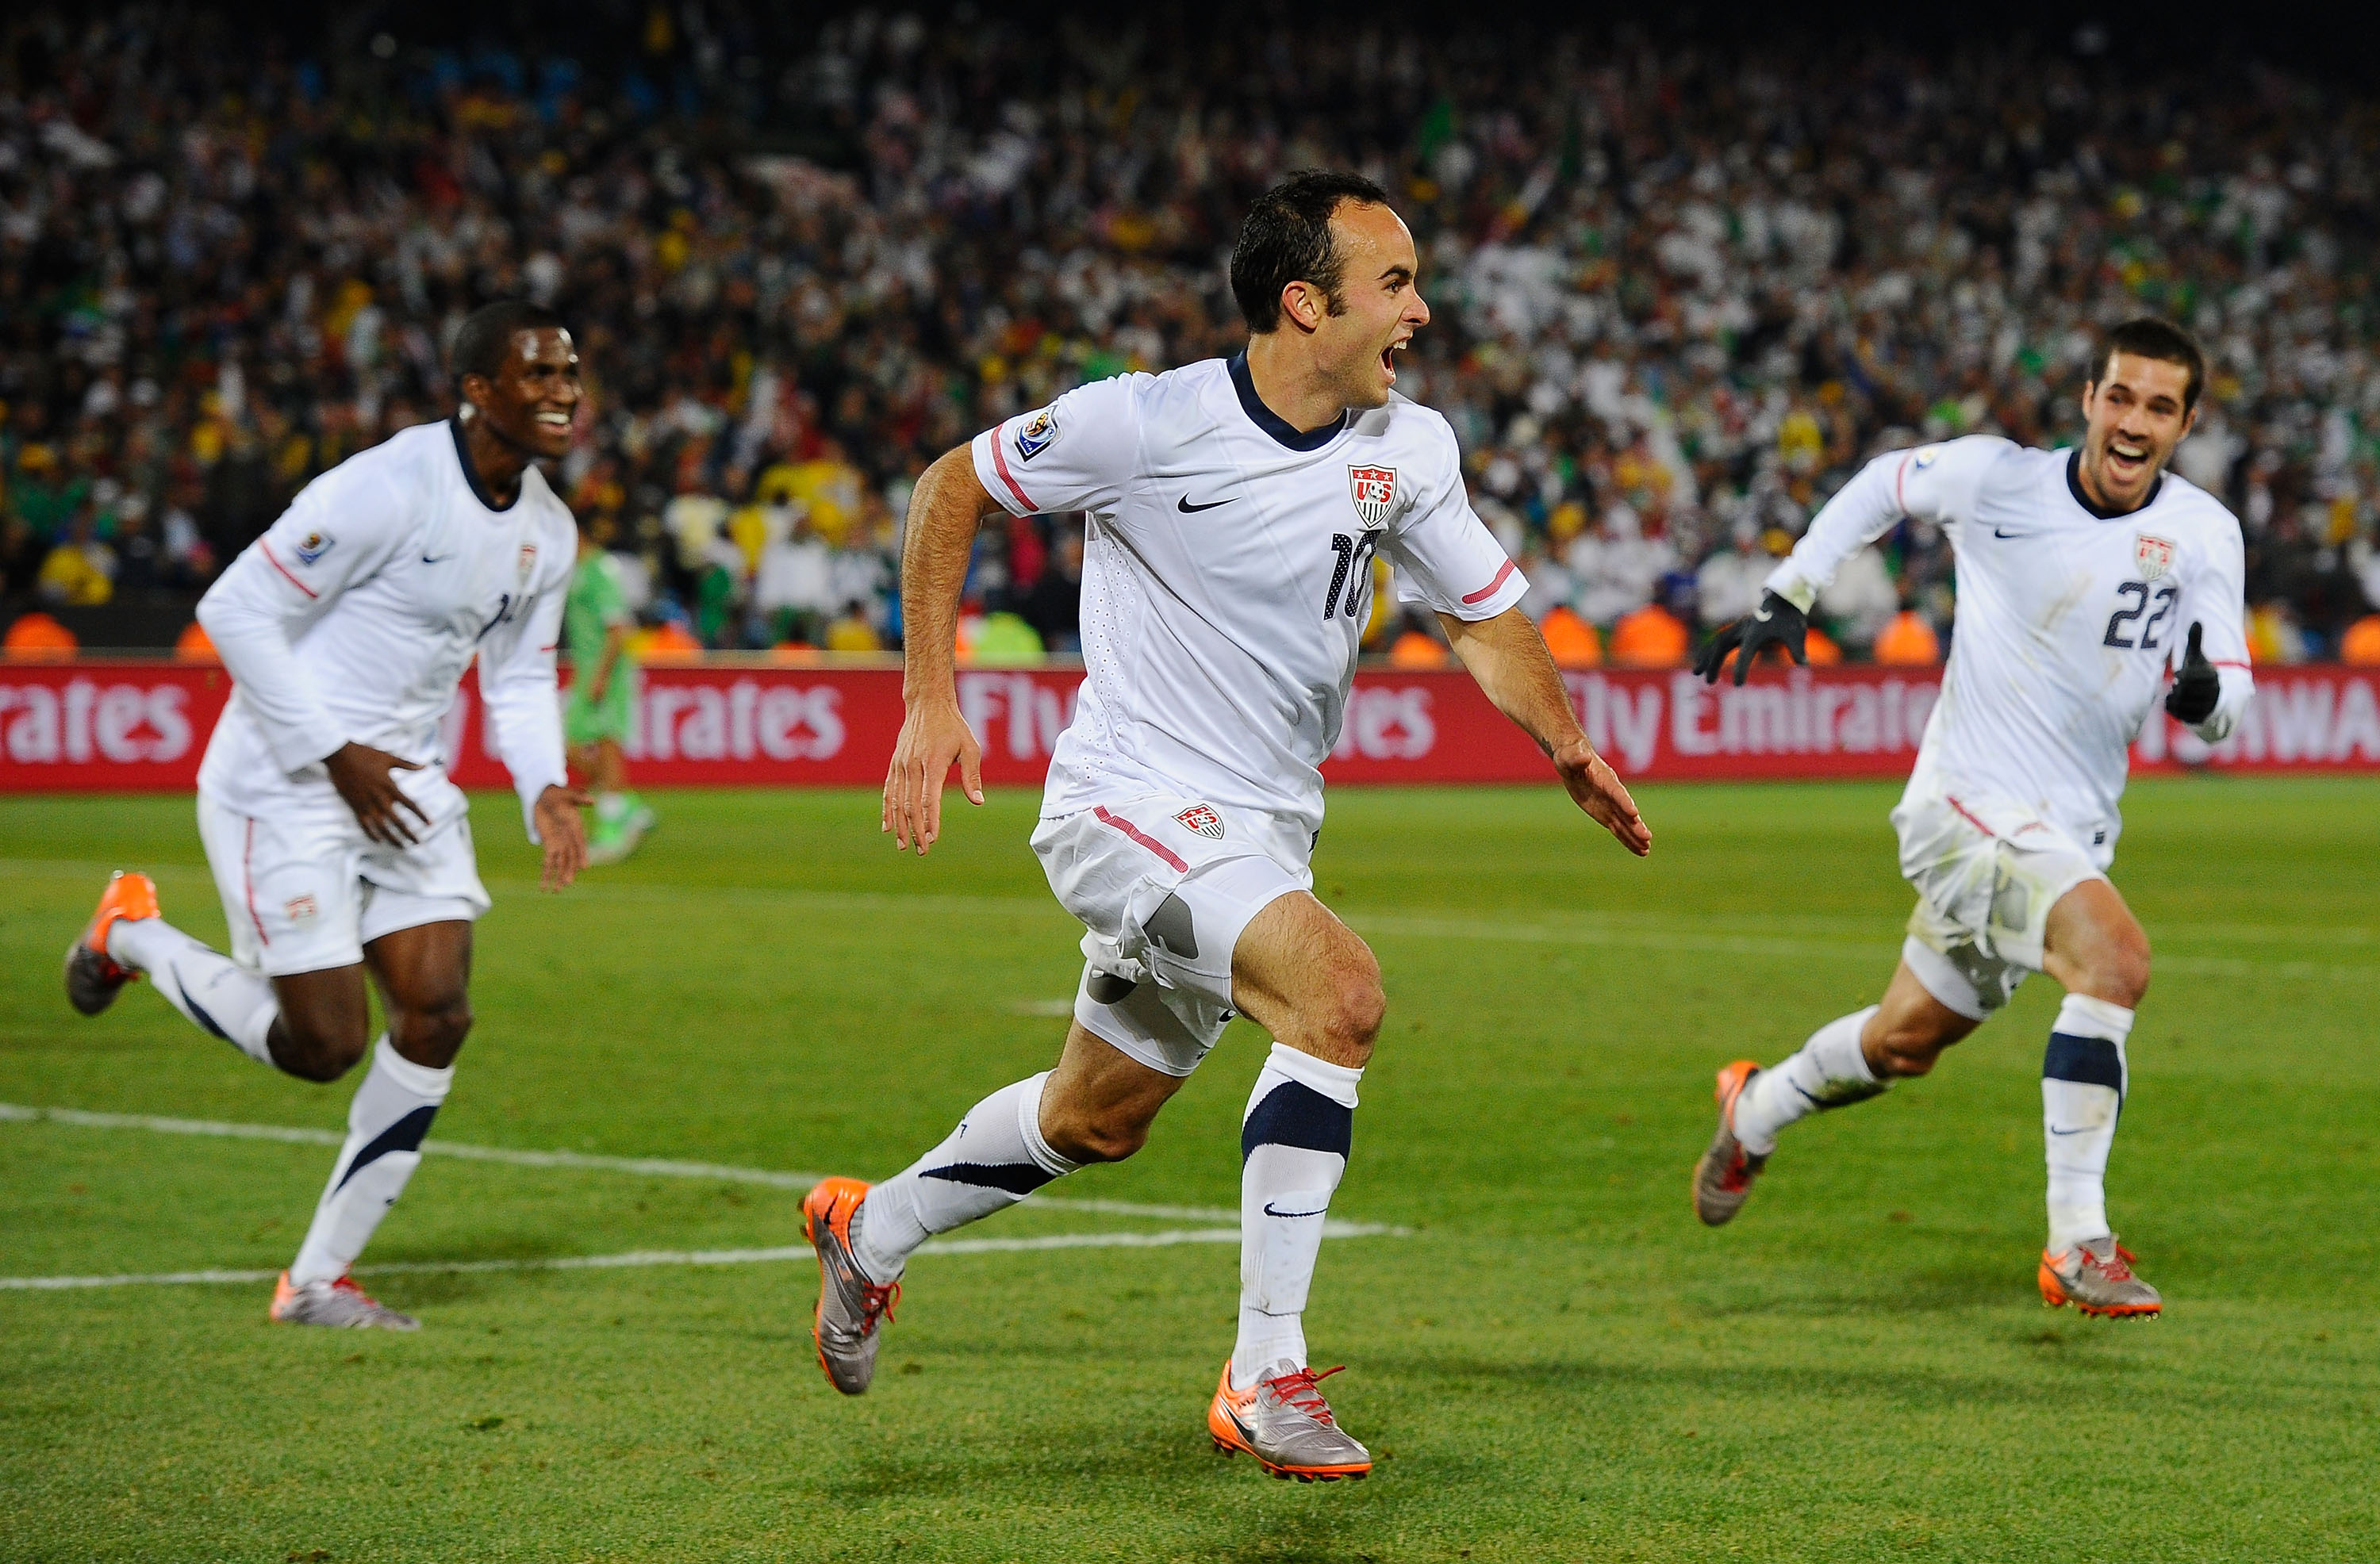 PRETORIA, SOUTH AFRICA - JUNE 23:  Landon Donovan of the United States celebrates scoring the winning goal that sends the USA through to the second round during the 2010 FIFA World Cup South Africa Group C match between USA and Algeria at the Loftus Versf